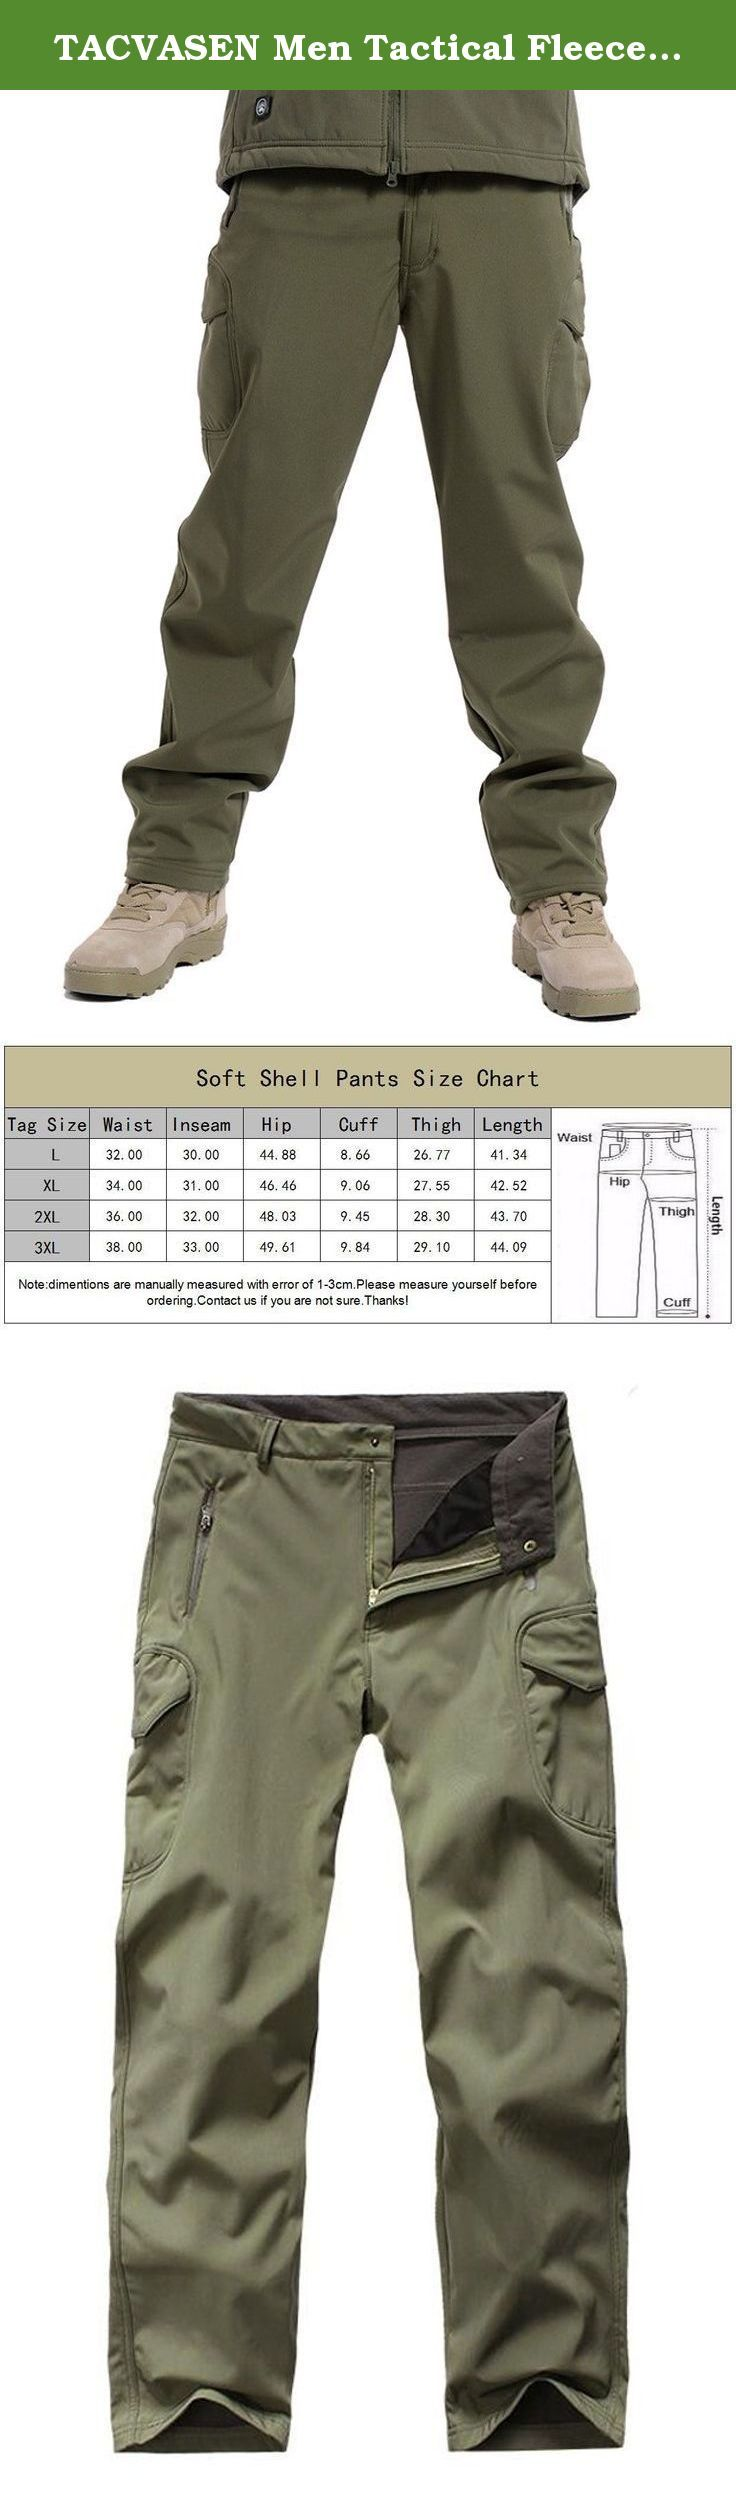 TACVASEN Men Tactical Fleece Lining Waterproof Climbing Hiking Hunting Cargo Pants Army Green. 100% Polyester,Soft Cozy Fleece Lining provides windproof, water resistant and anti-abrasion properties Occasion:outdoor activities/casual ATTENTION 1. Please check the size chart before buying. Our size is not standard US size. 2. Due to individual computer monitor settings, actual colors may vary slightly from those you see on your screen. Size Information Tag...